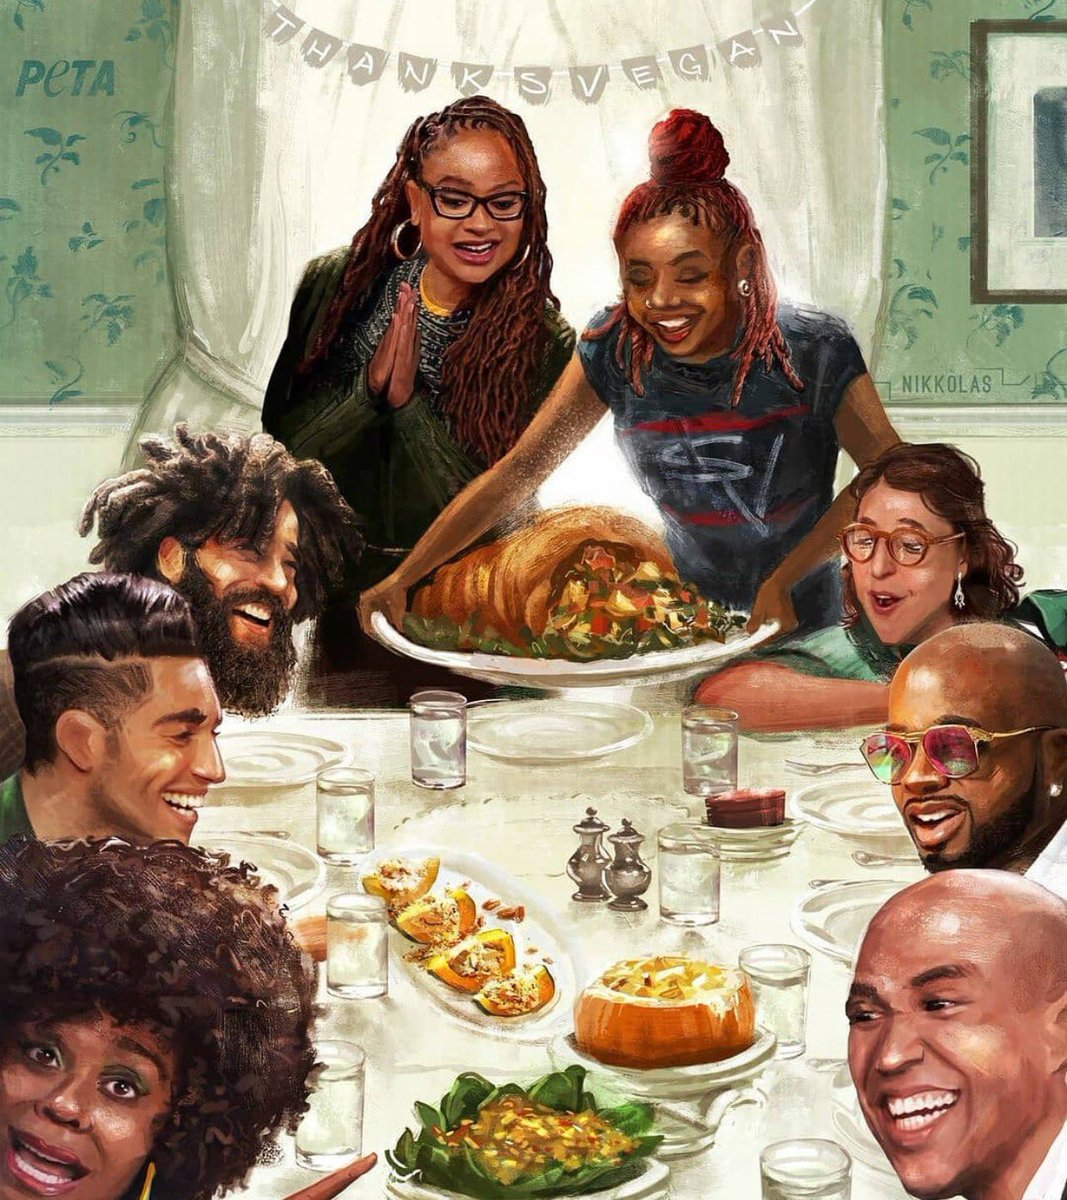 We have a Thanksgiving entry!!  I think this is a vegan theme, but this is still the most random ass group of people...  You don't know more vegan ppl than to put JD, Ava and Cory Booker together? Who is the white lady? And is that supposed to be J Cole?   And what on the plate?